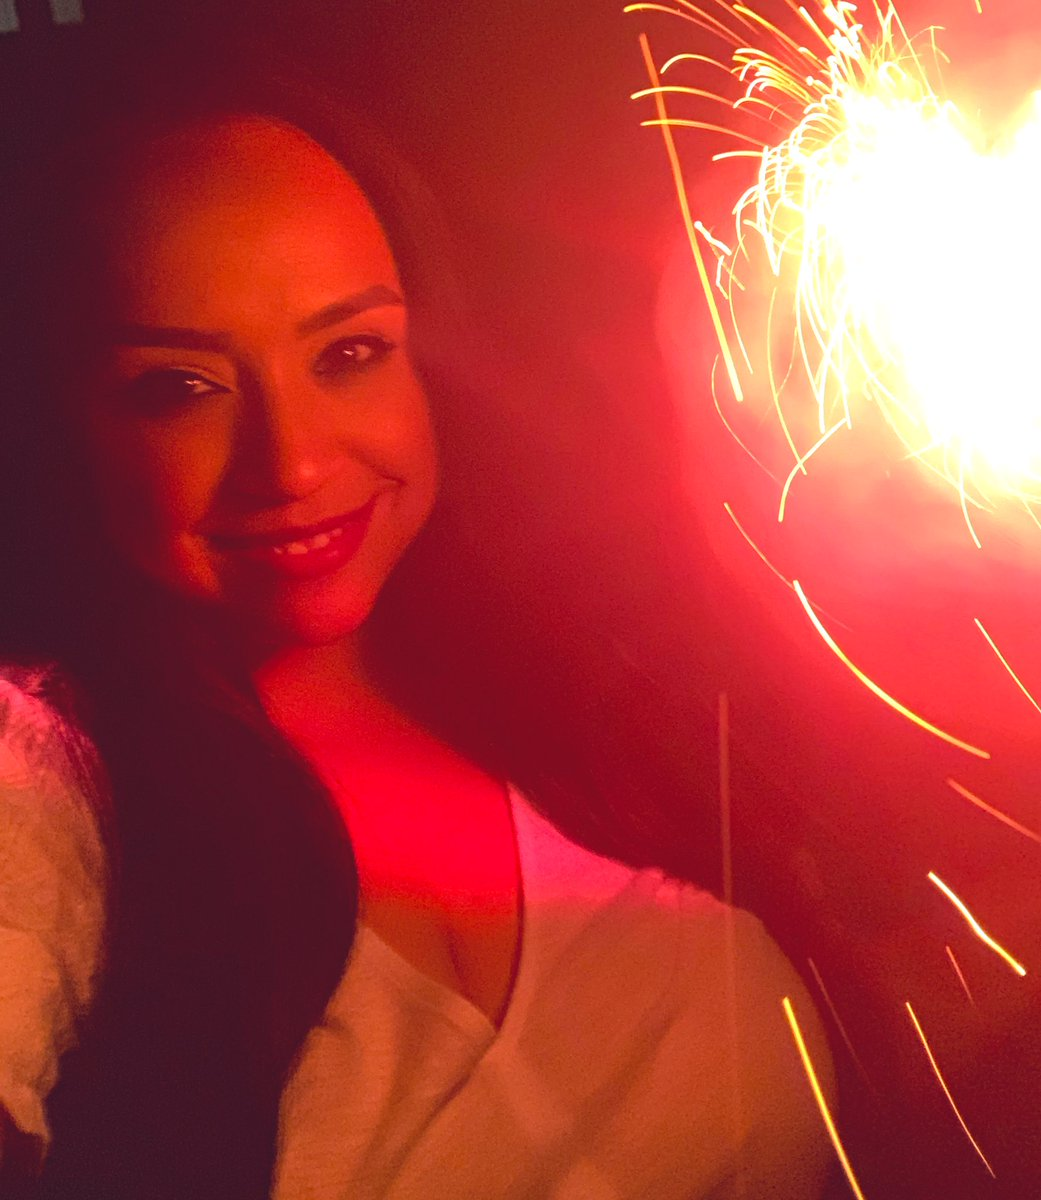 Have a safe night everyone!!! 🎇🇺🇸🎆